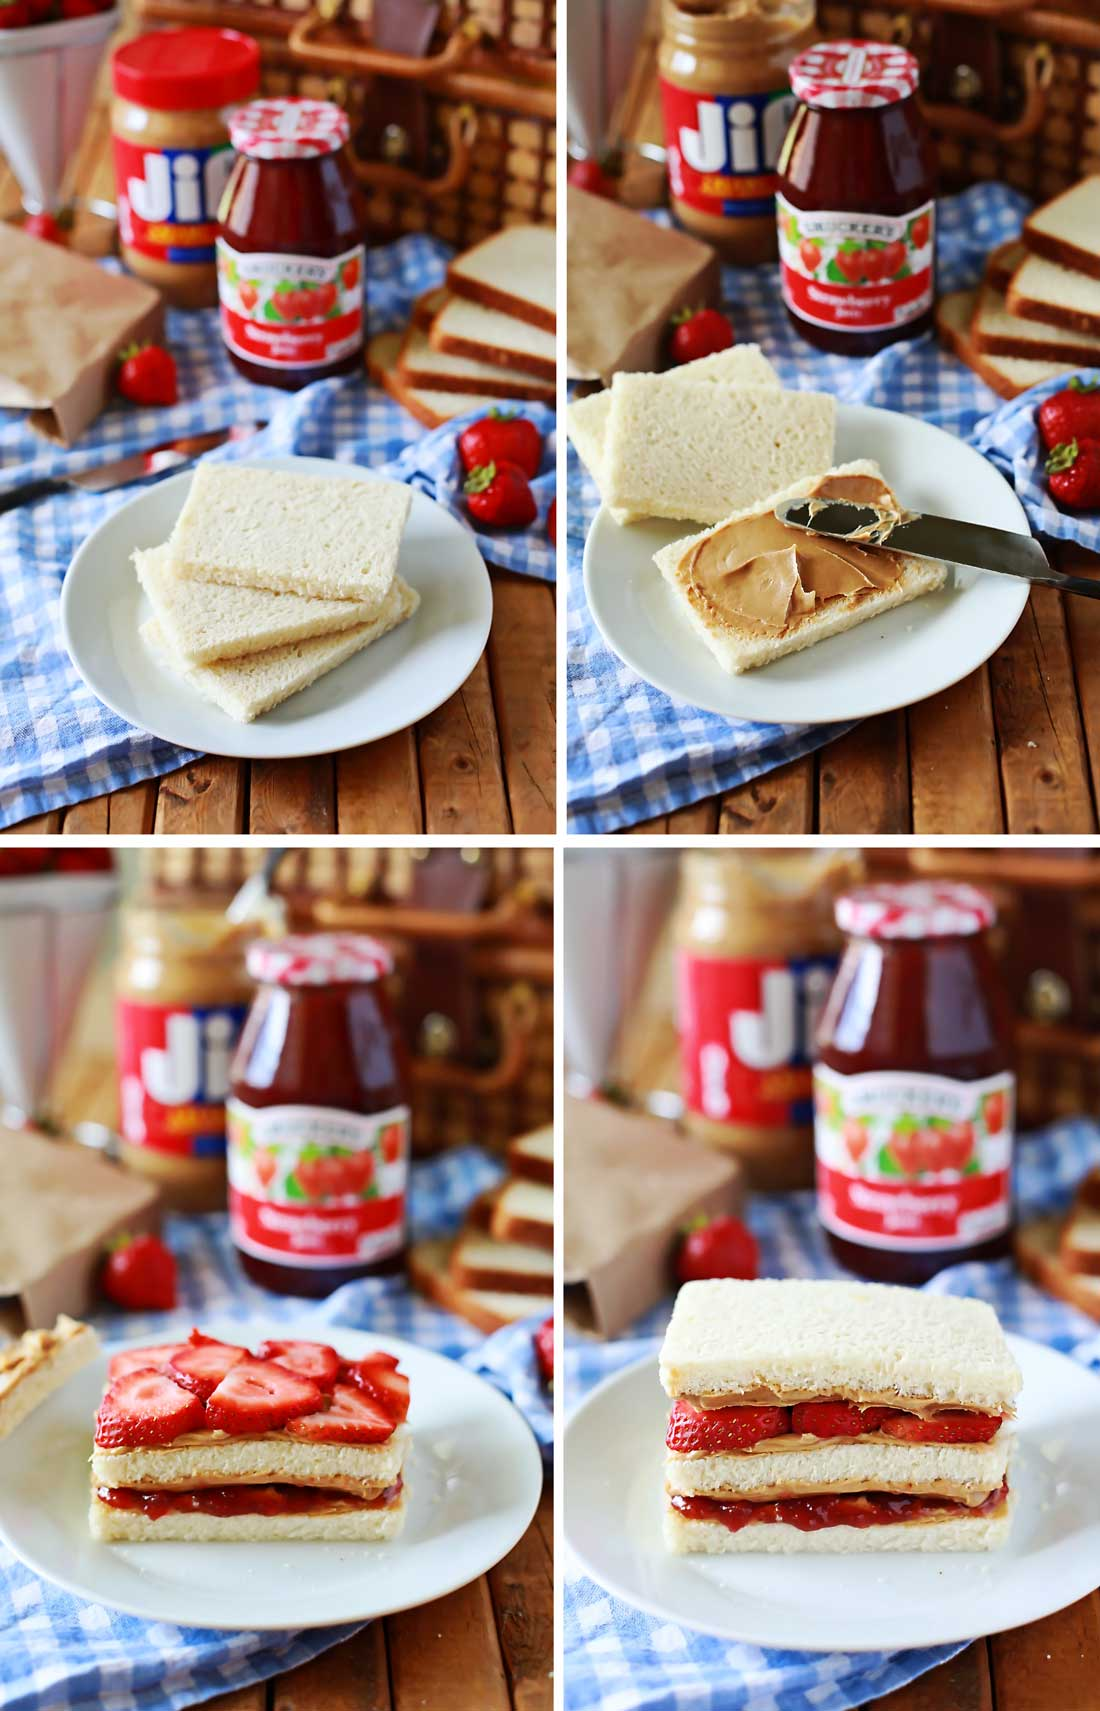 The best Peanut Butter and Jelly Sandwich ever of all time! Easy yummy recipe by Flirting with Flavor.